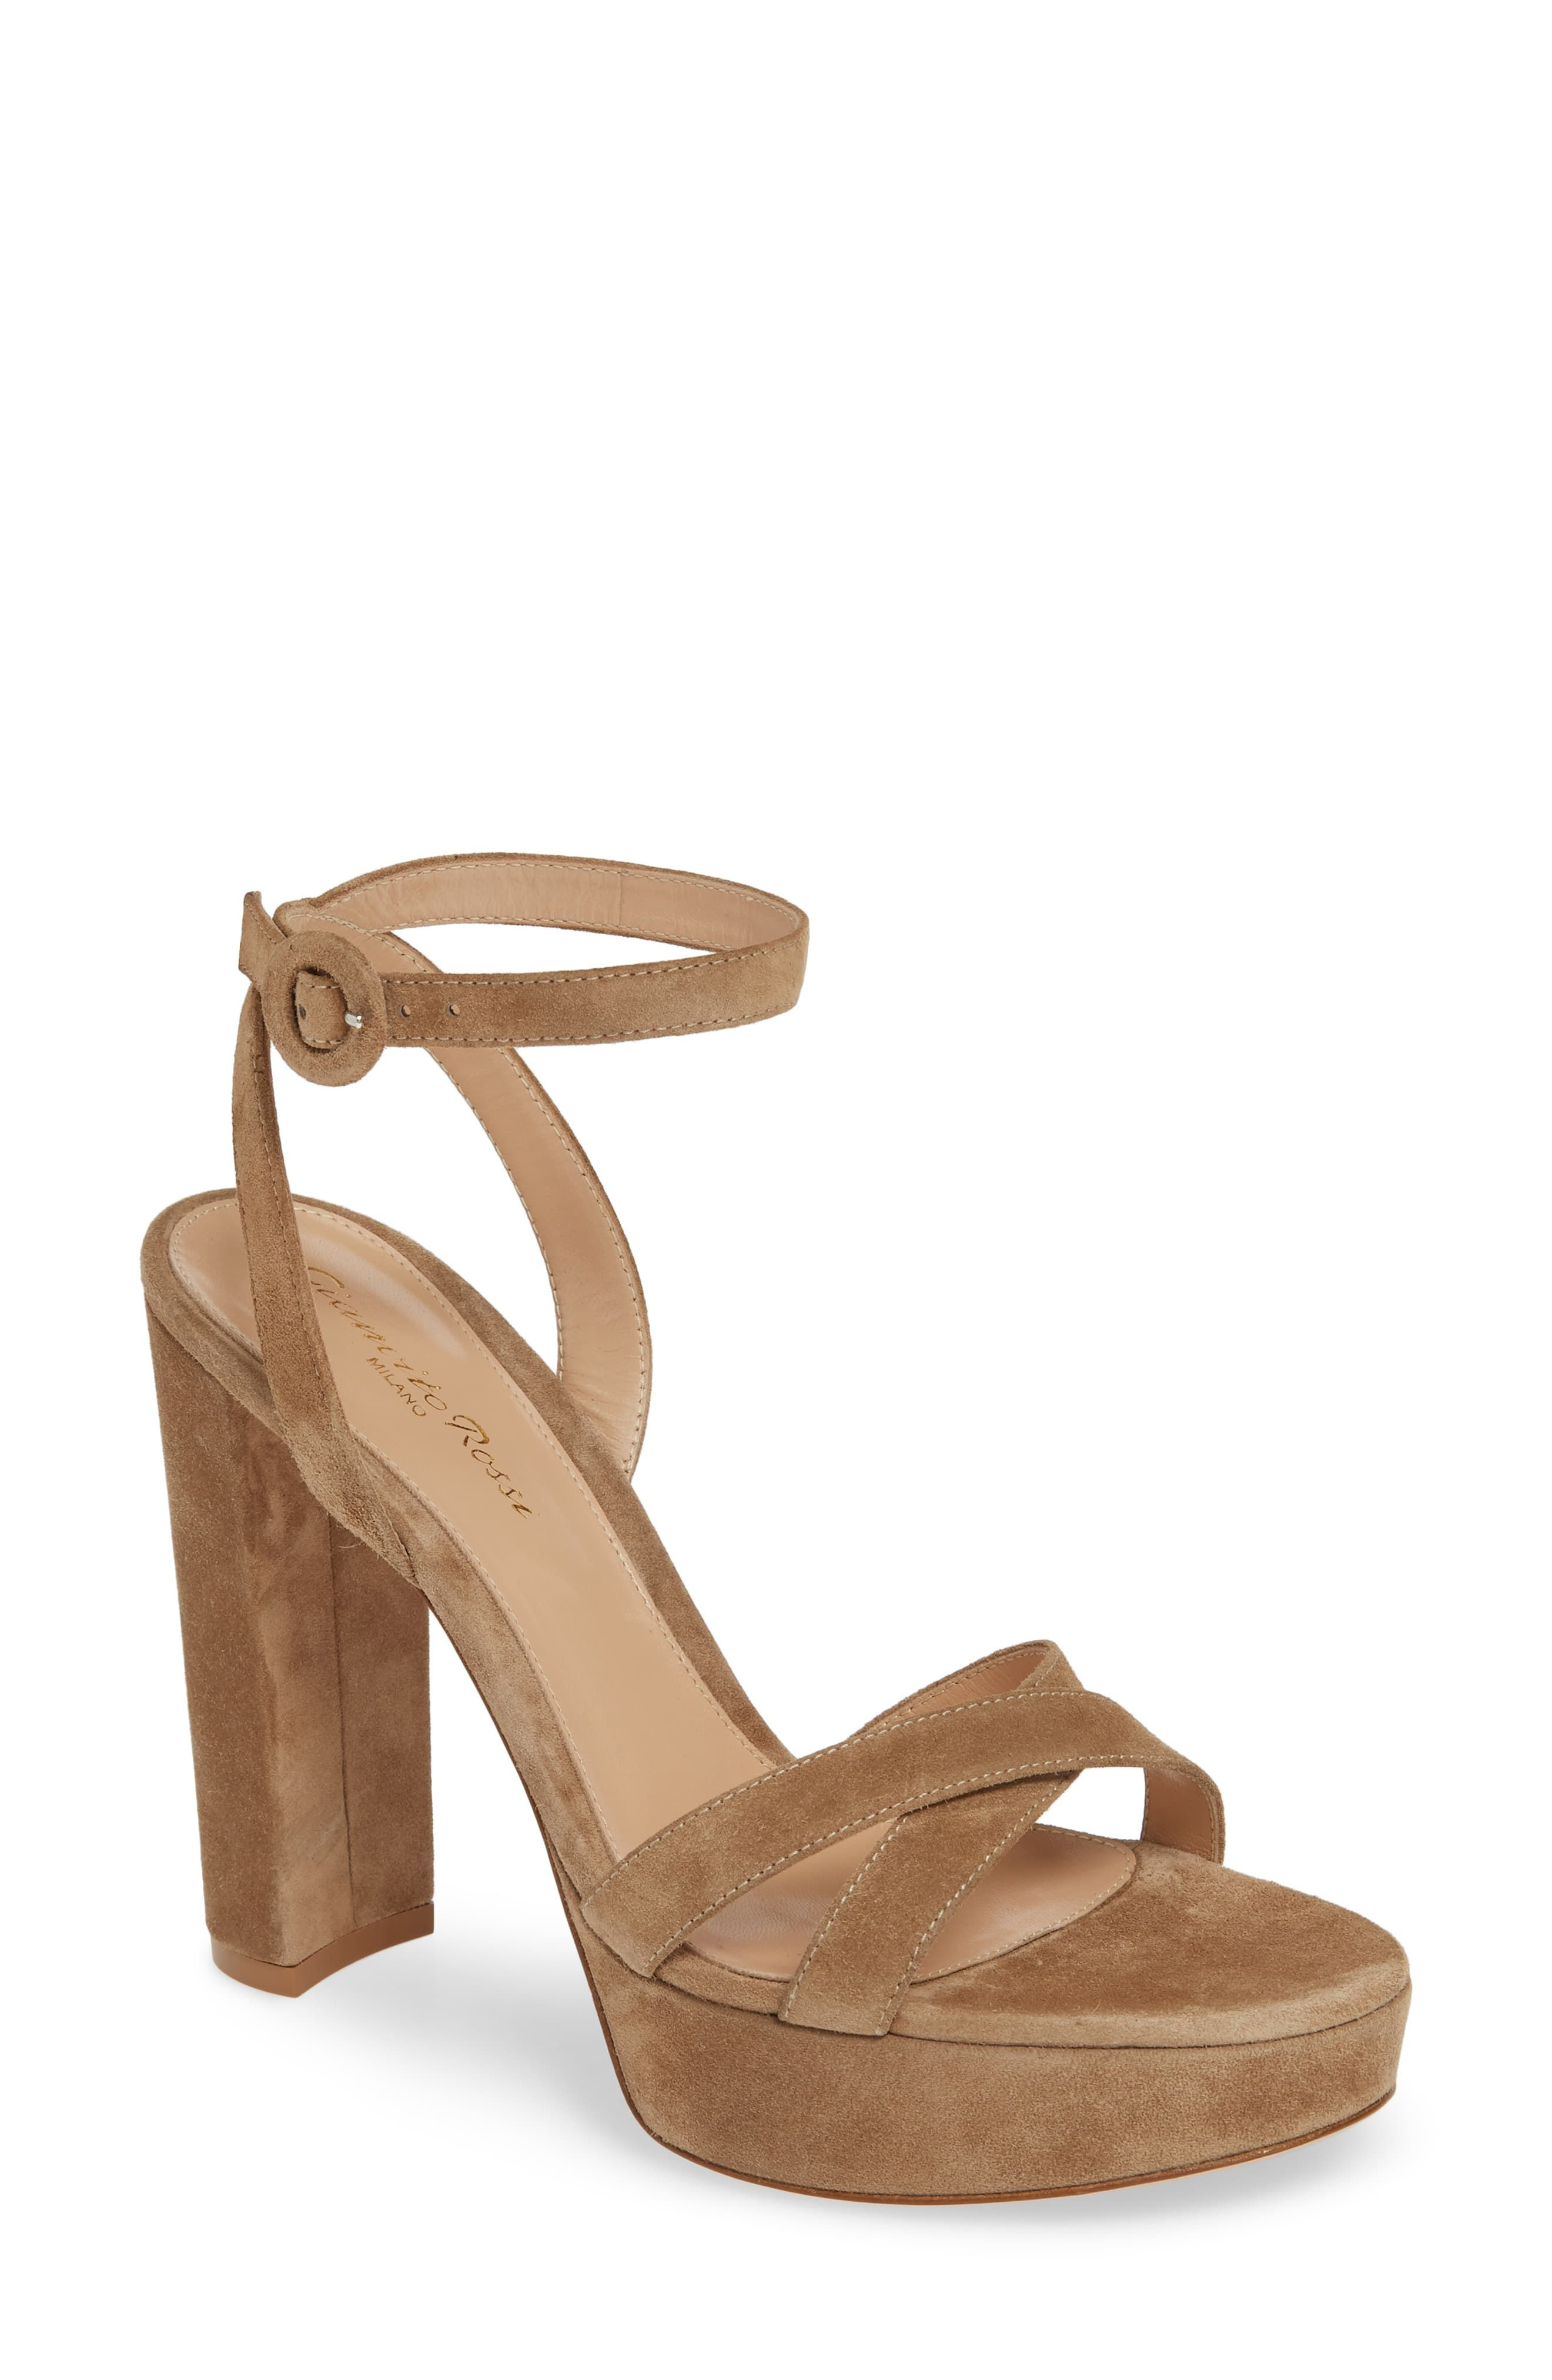 Ankle Strap Platform Sandal GIANVITO ROSSI nordstrom.com $845.00 SHOP NOW The dream team in shoe form: A thick platform, chunky heel, and secure wrap-around ankle straps.